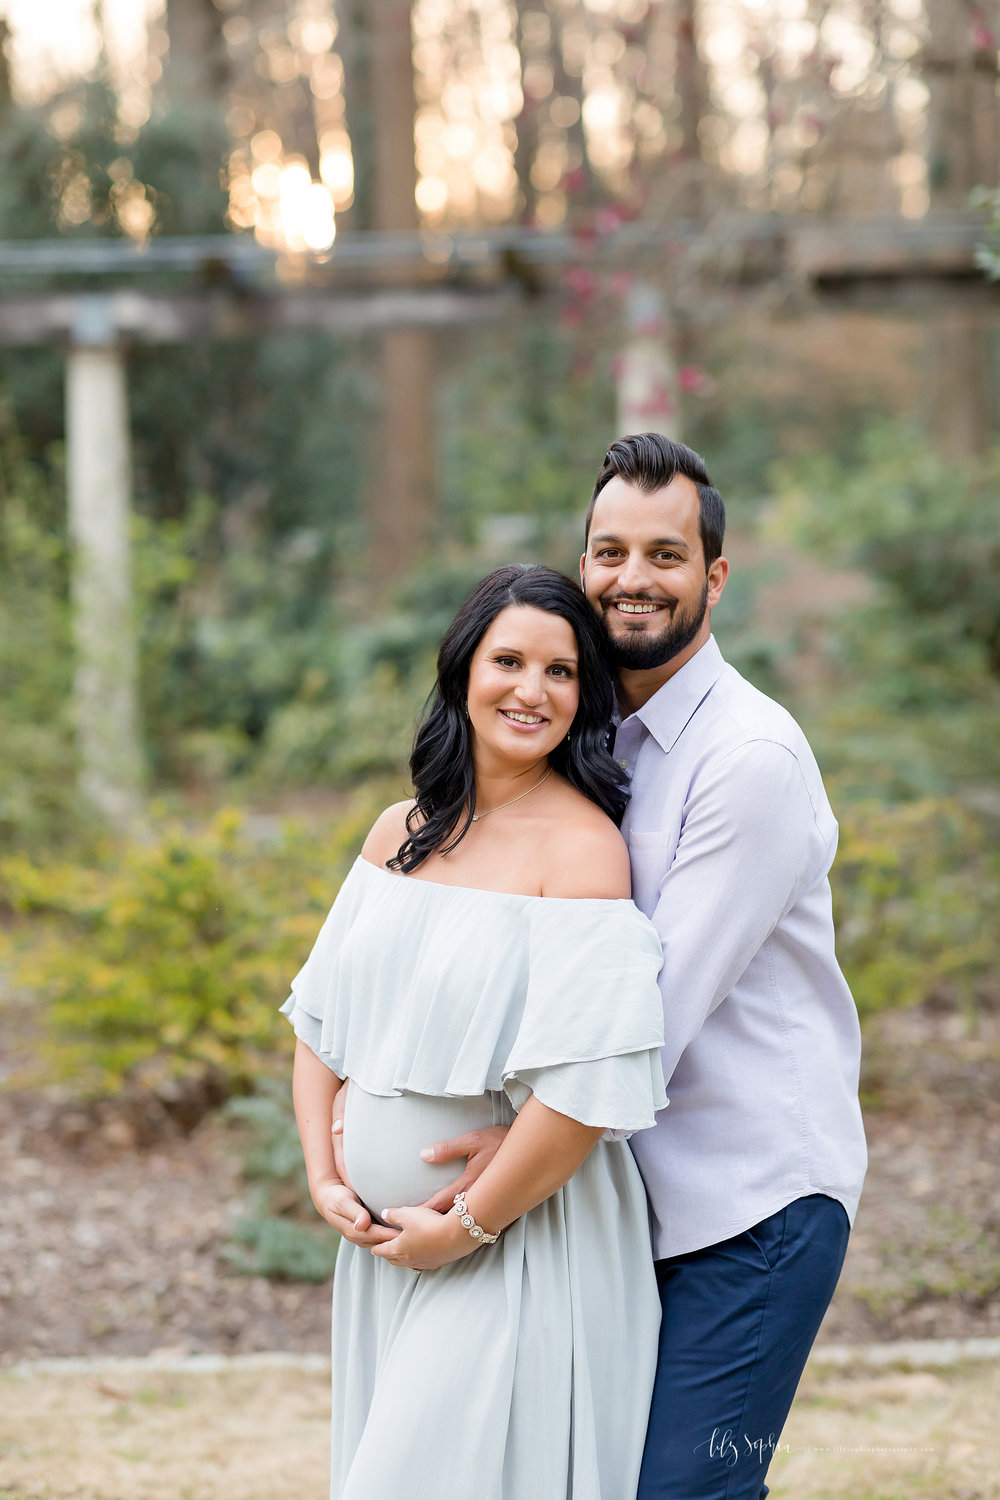 atlanta-midtown-virginia-highlands-roswell-decatur-lily-sophia-photography-maternity-sunset-session-gardens_0508.jpg